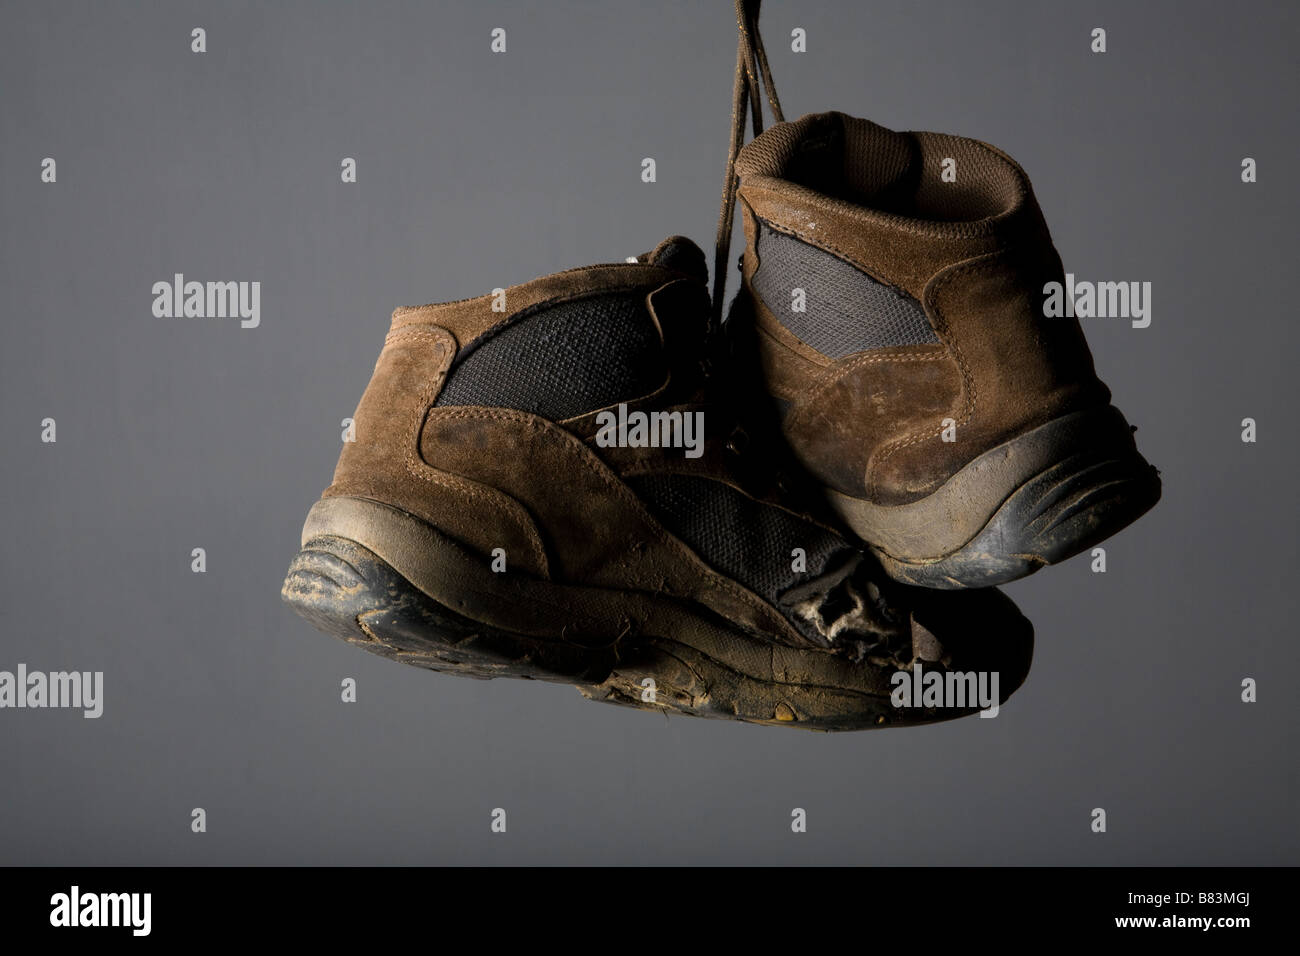 old boots - Stock Image